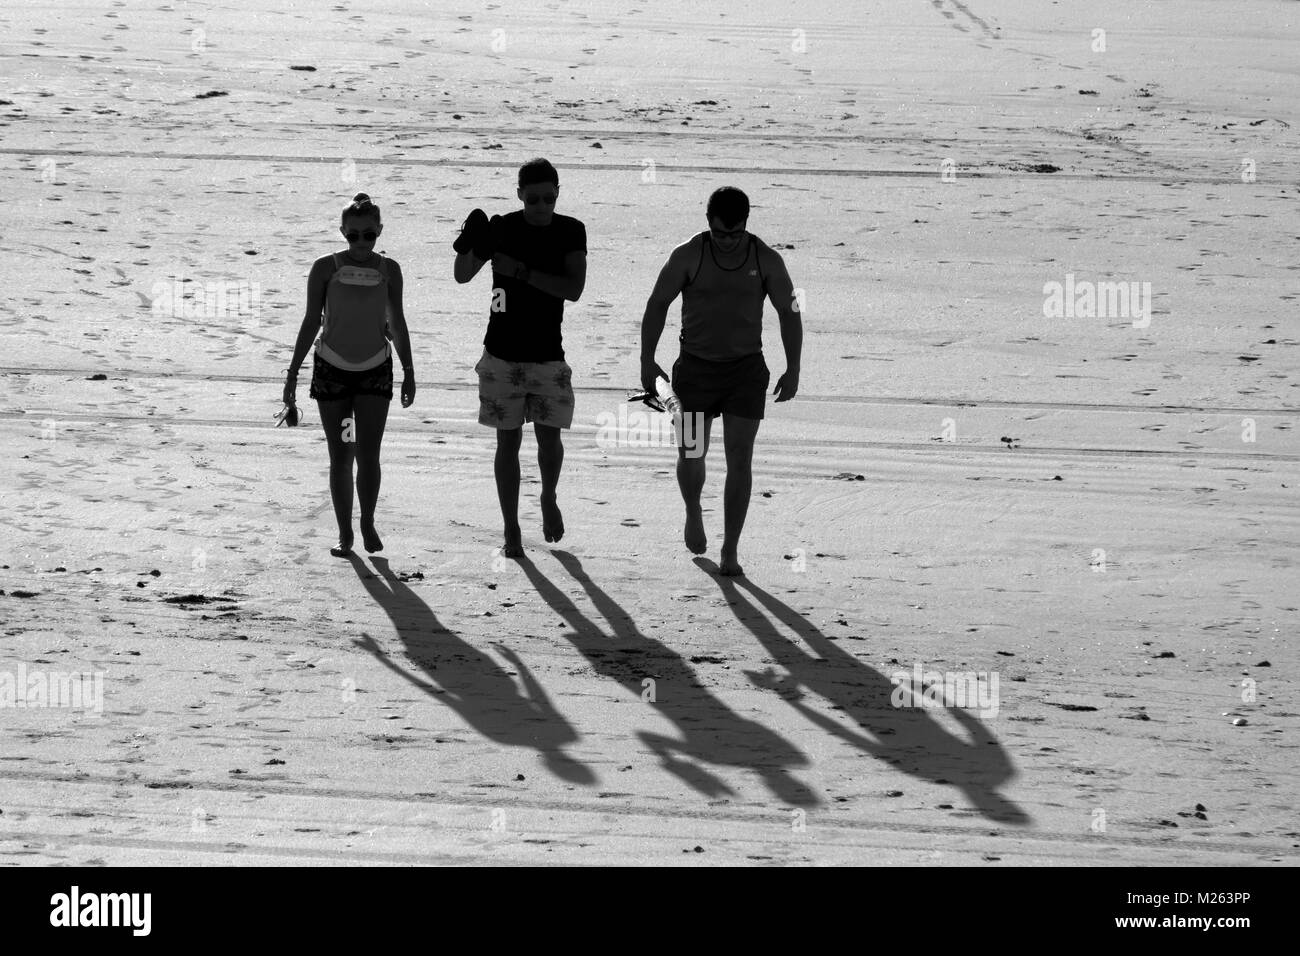 Silhouette of 3 people walking on a sandy beach, Cable Beach,  Broome, West Kimberley, Western Australia - Stock Image